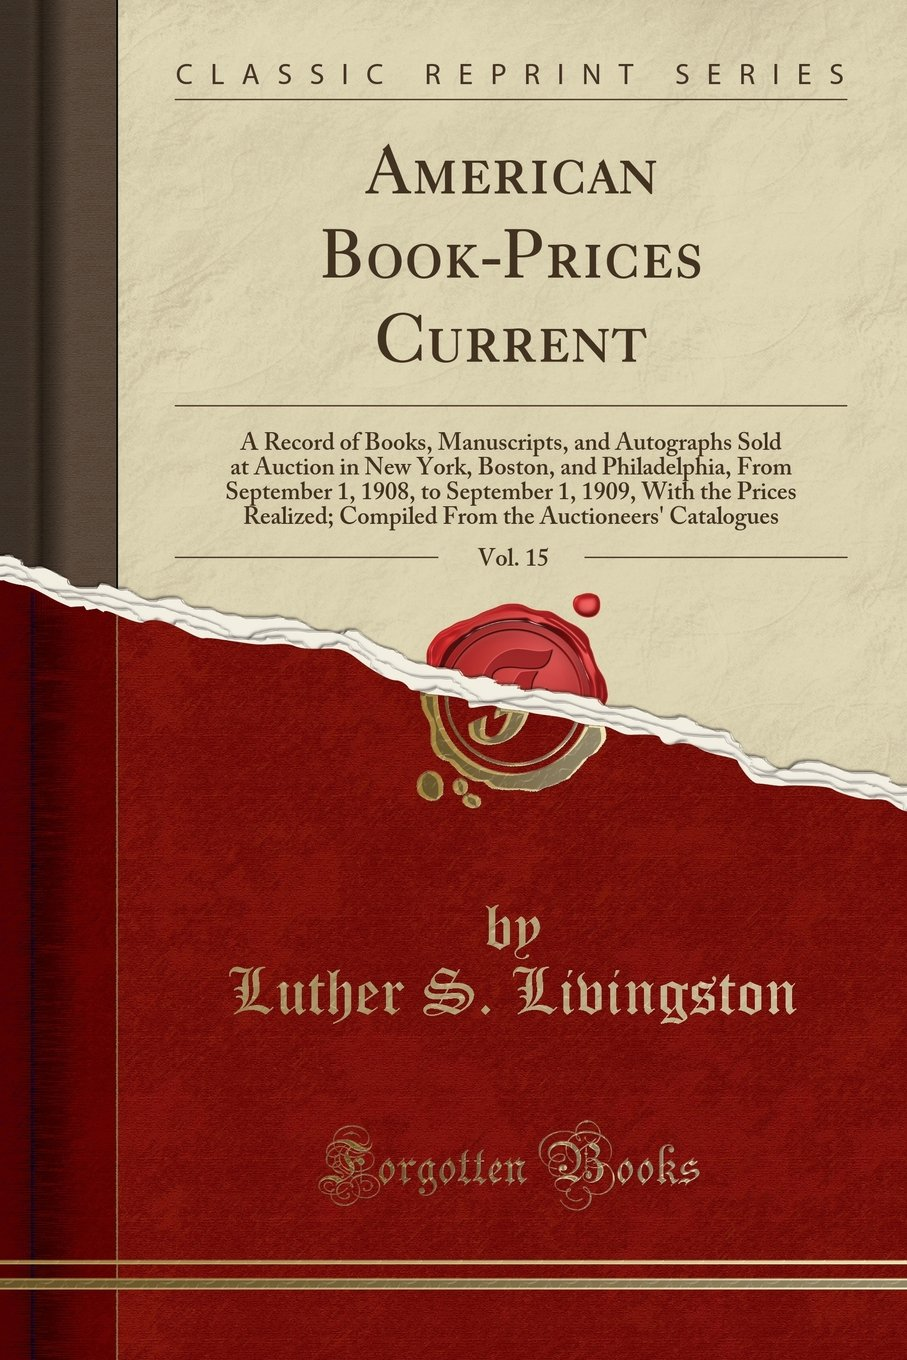 Read Online American Book-Prices Current, Vol. 15: A Record of Books, Manuscripts, and Autographs Sold at Auction in New York, Boston, and Philadelphia, from ... Compiled from the Auctioneers' Catalogues pdf